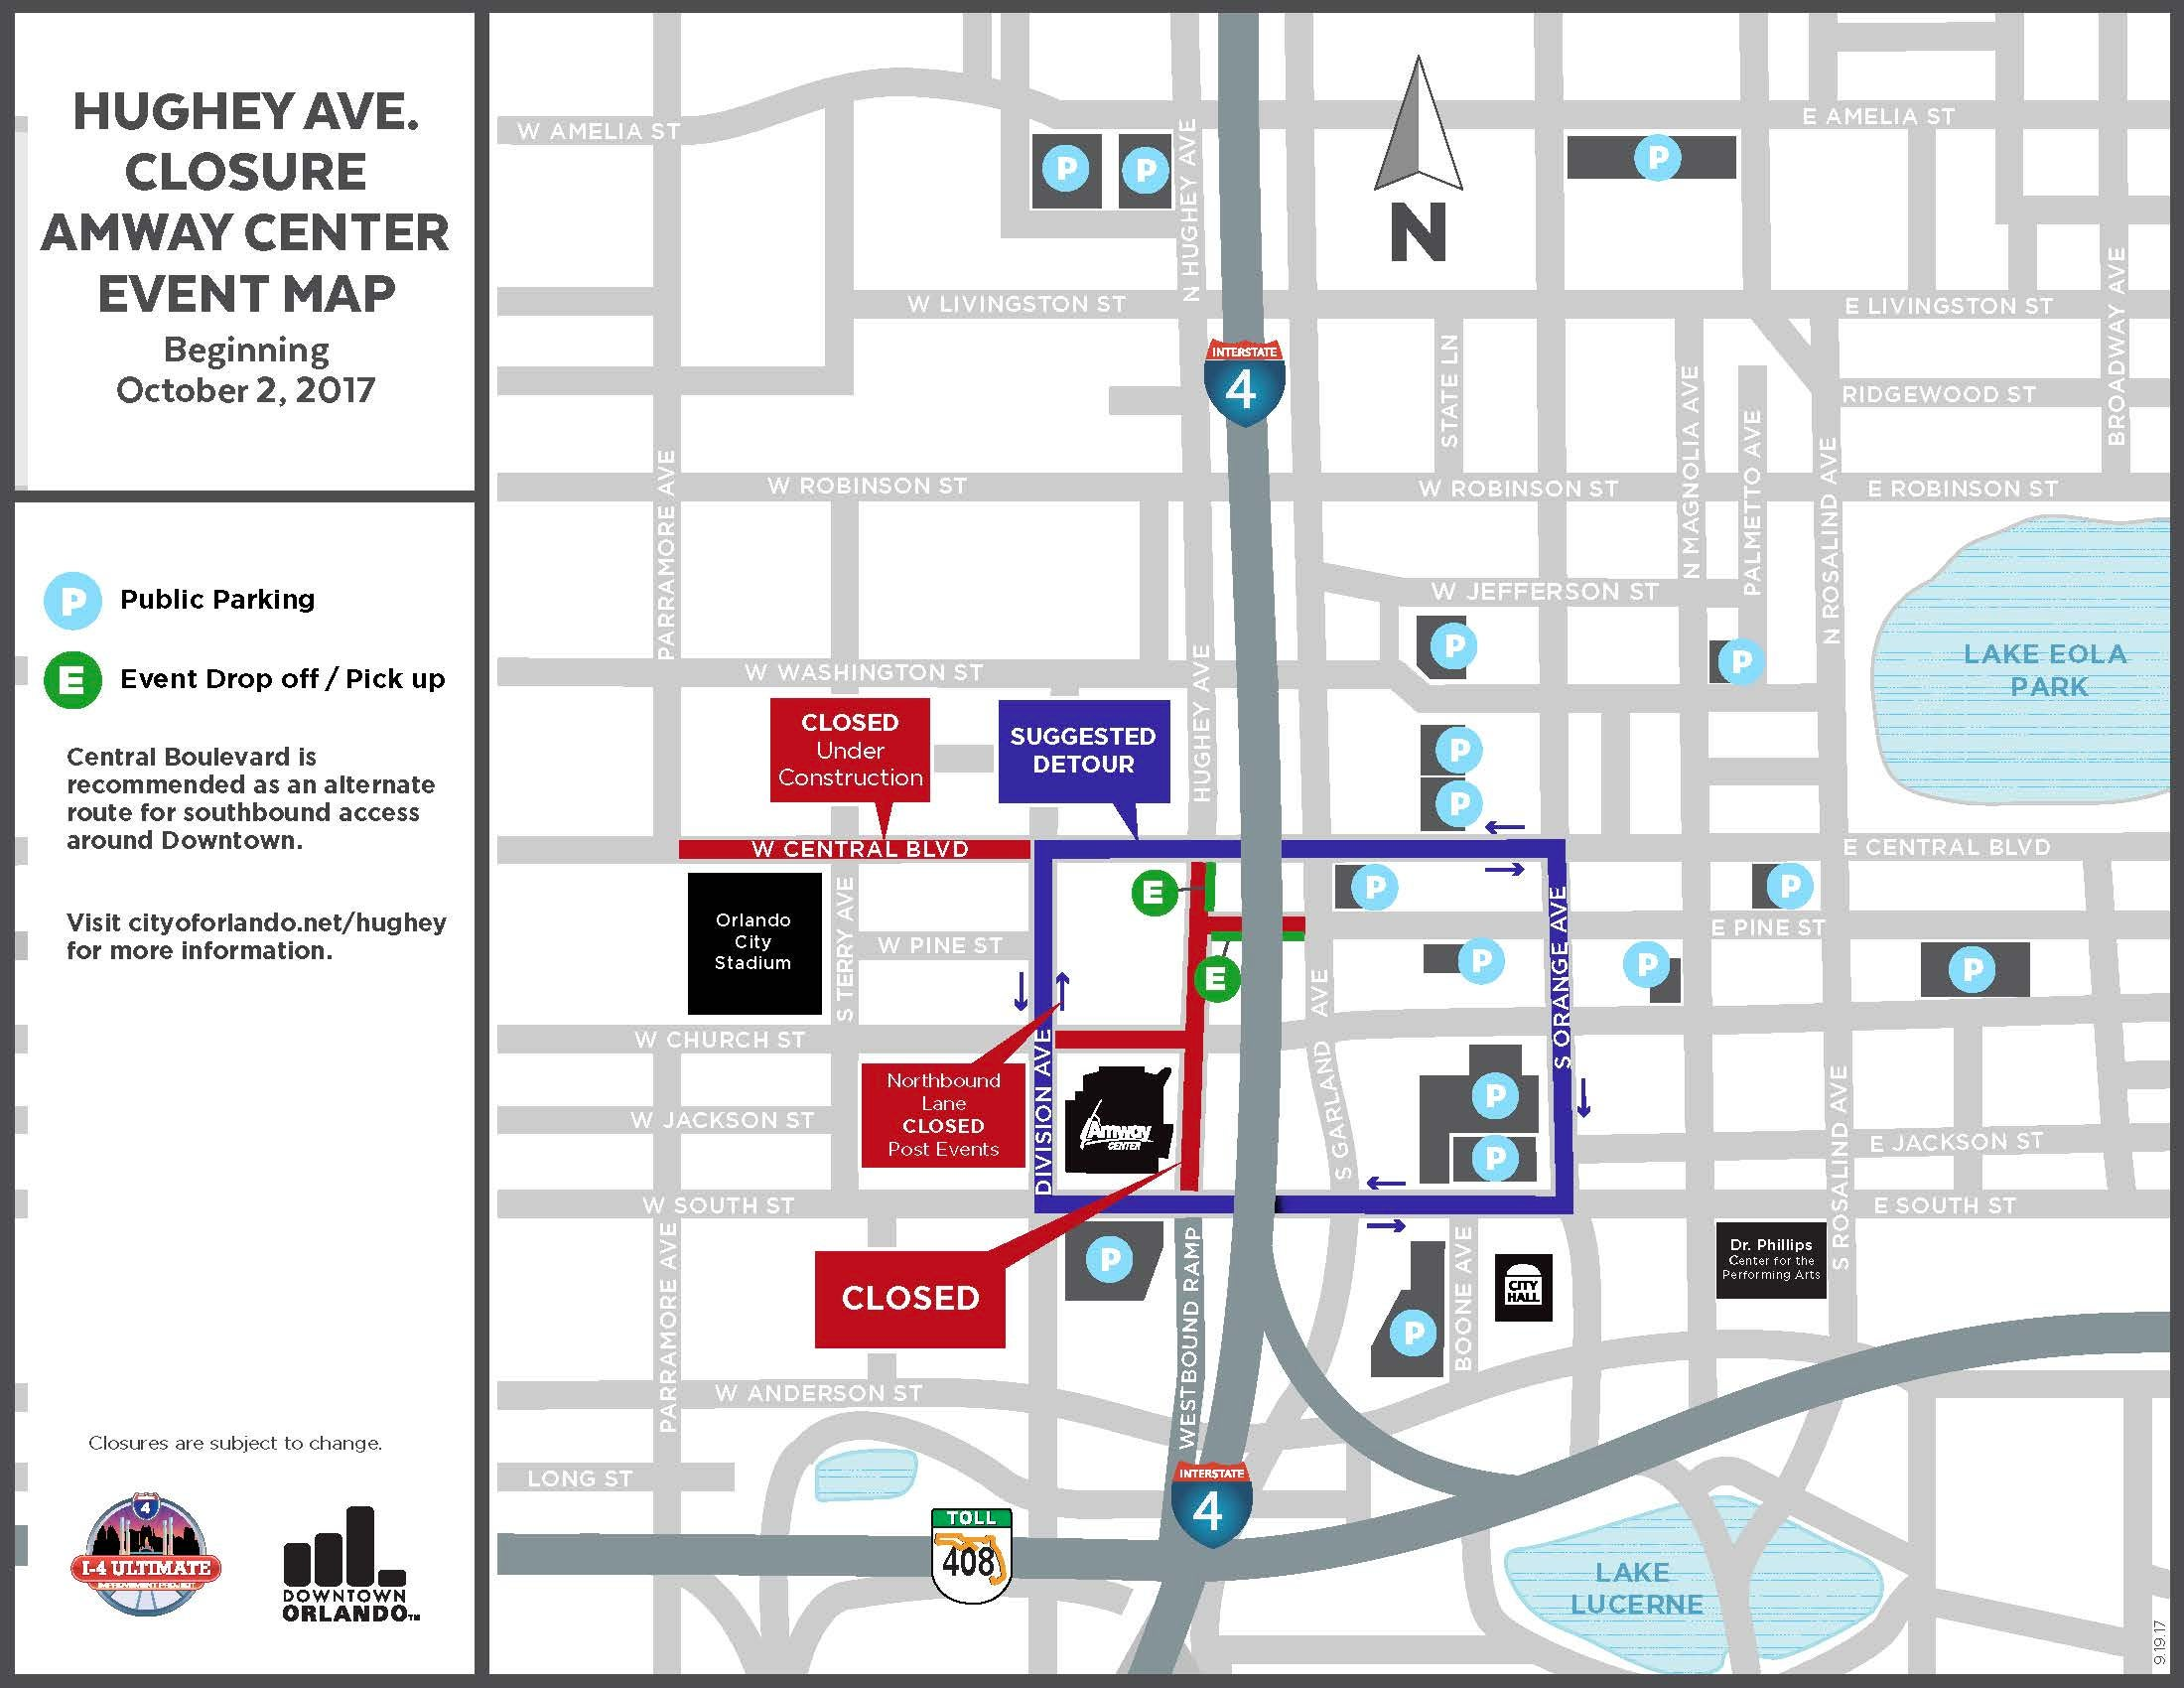 Click Here To View Road Closures And Suggested Detours